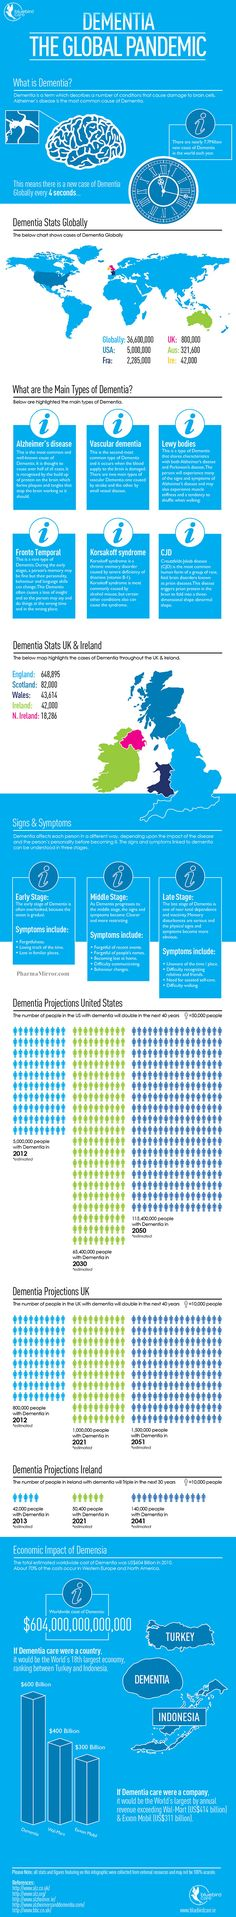 Dementia definition, Symptoms and USA UK Ireland Prevalence Sobering facts and projections on the different forms of Demensia, existing globals stats, and projections for future and impact on world economy. My husband's father has this and it is one of the most debilitating, difficult diseases for a family to affordably manage- both emotionally and economically.